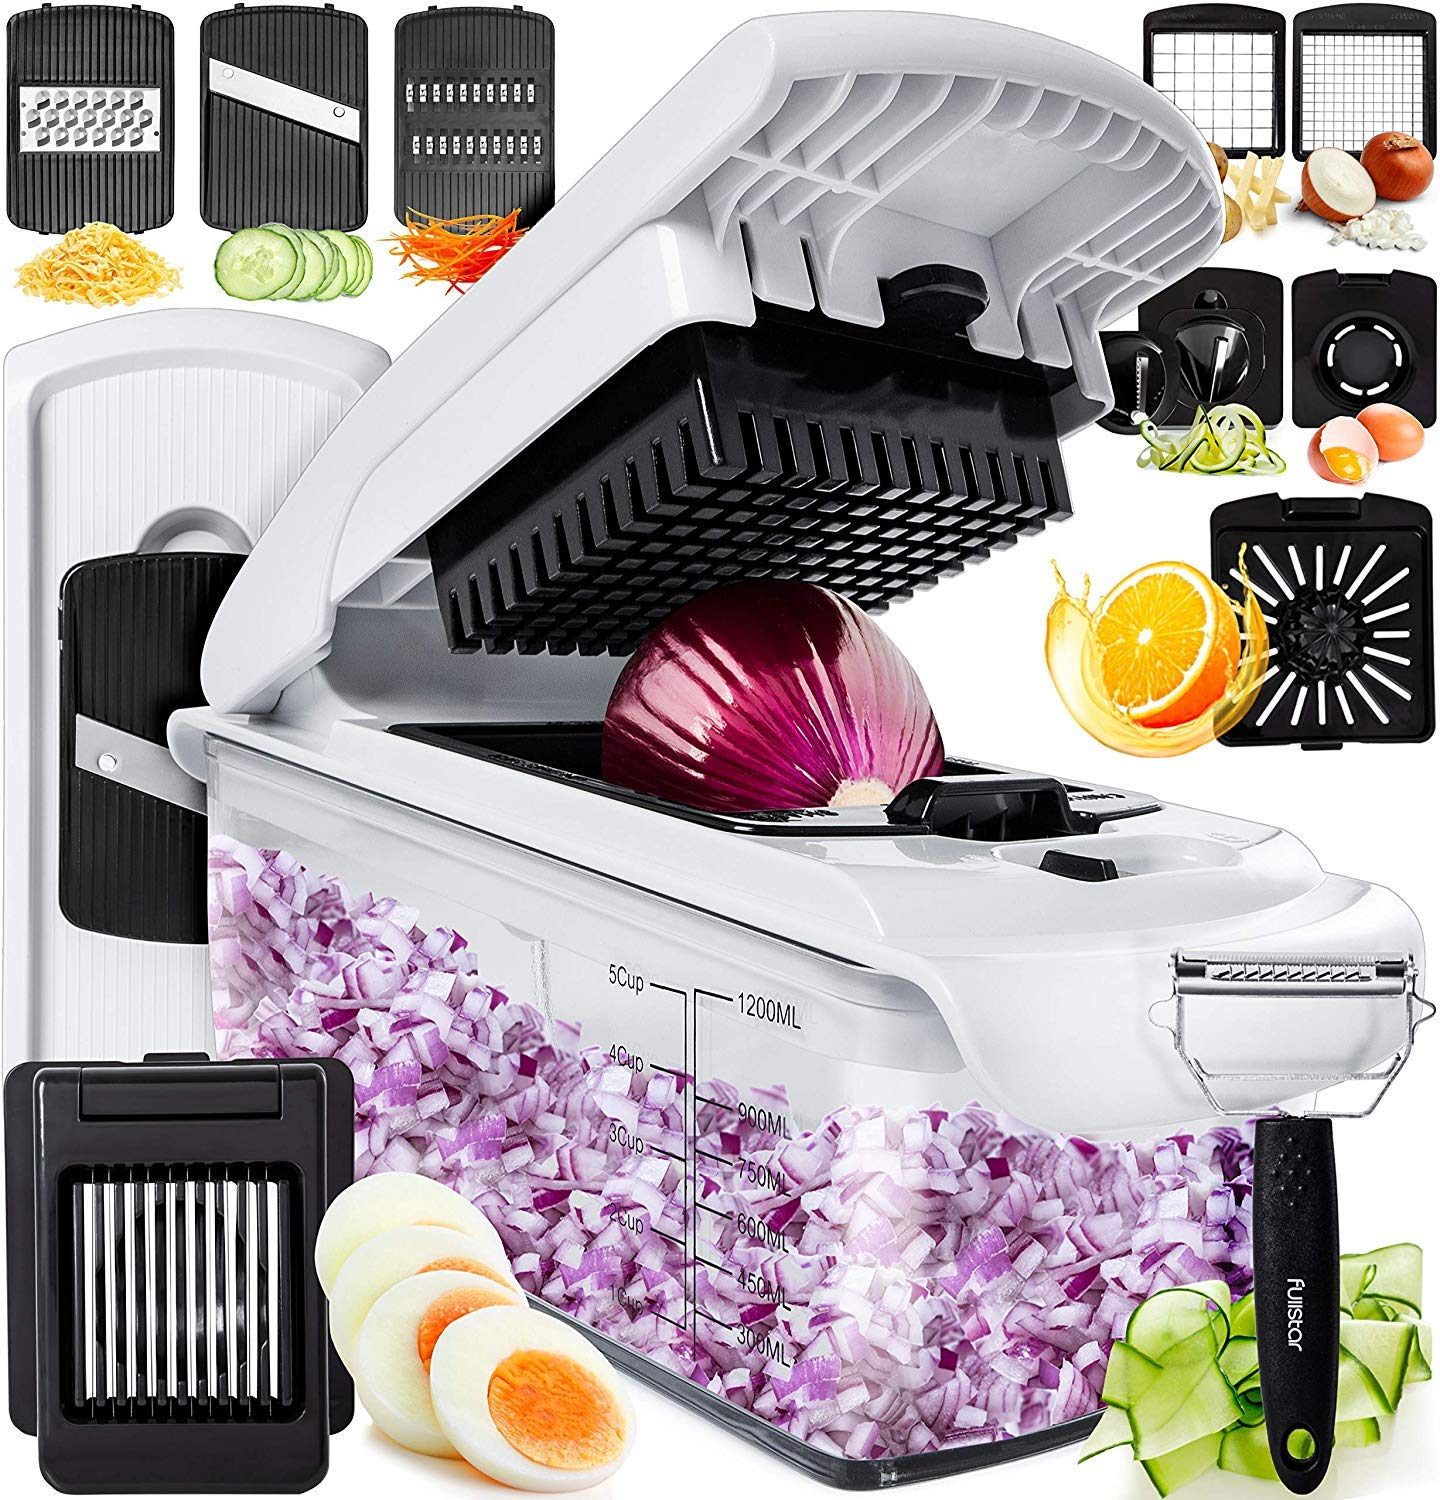 Fullstar Vegetable Chopper Mandoline Slicer